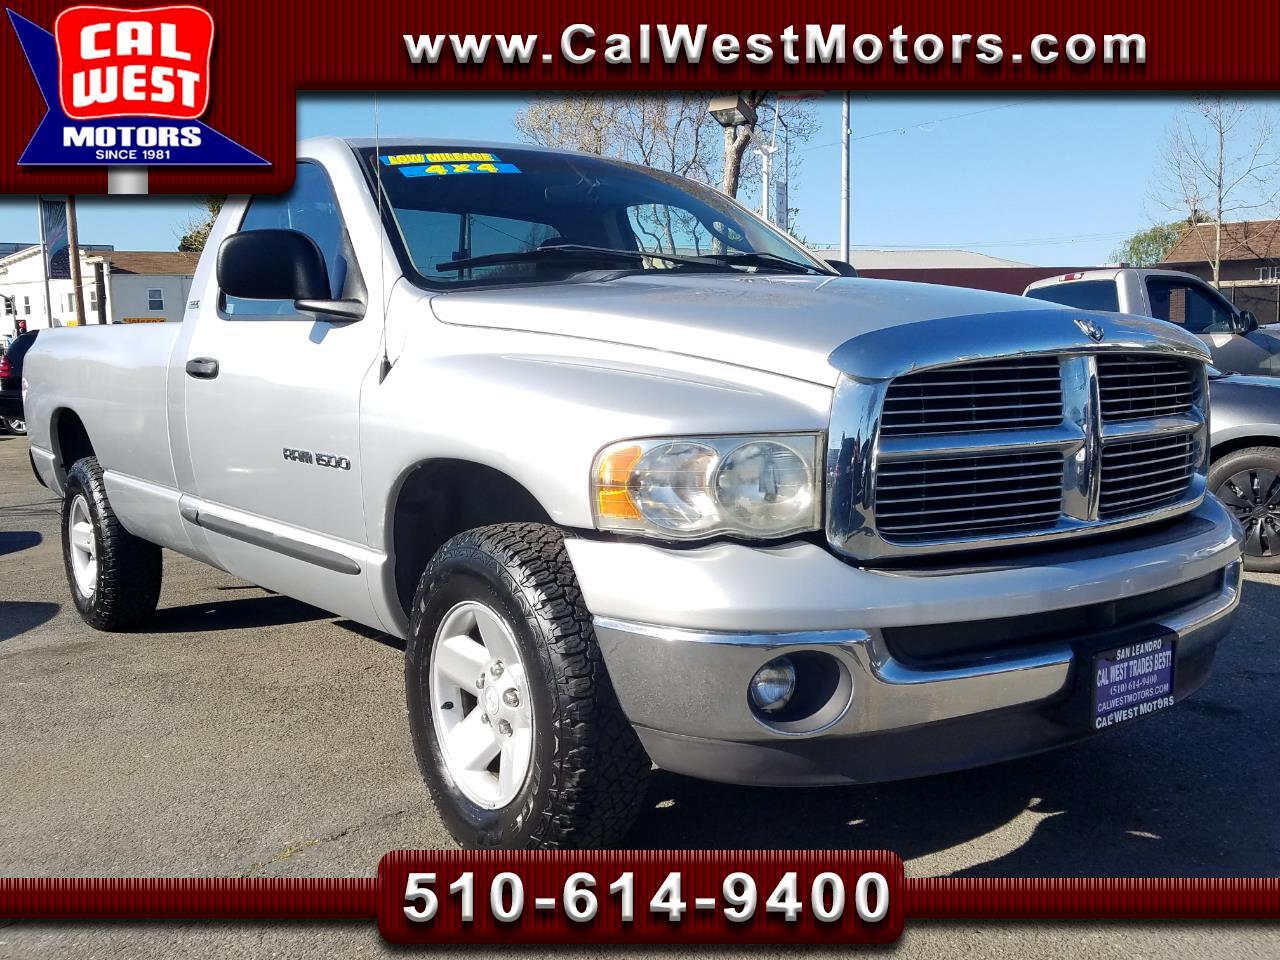 2002 Dodge Ram 1500 4X4 LongBed LowMiles 1Owner ExpertlyMntnd VeryClea